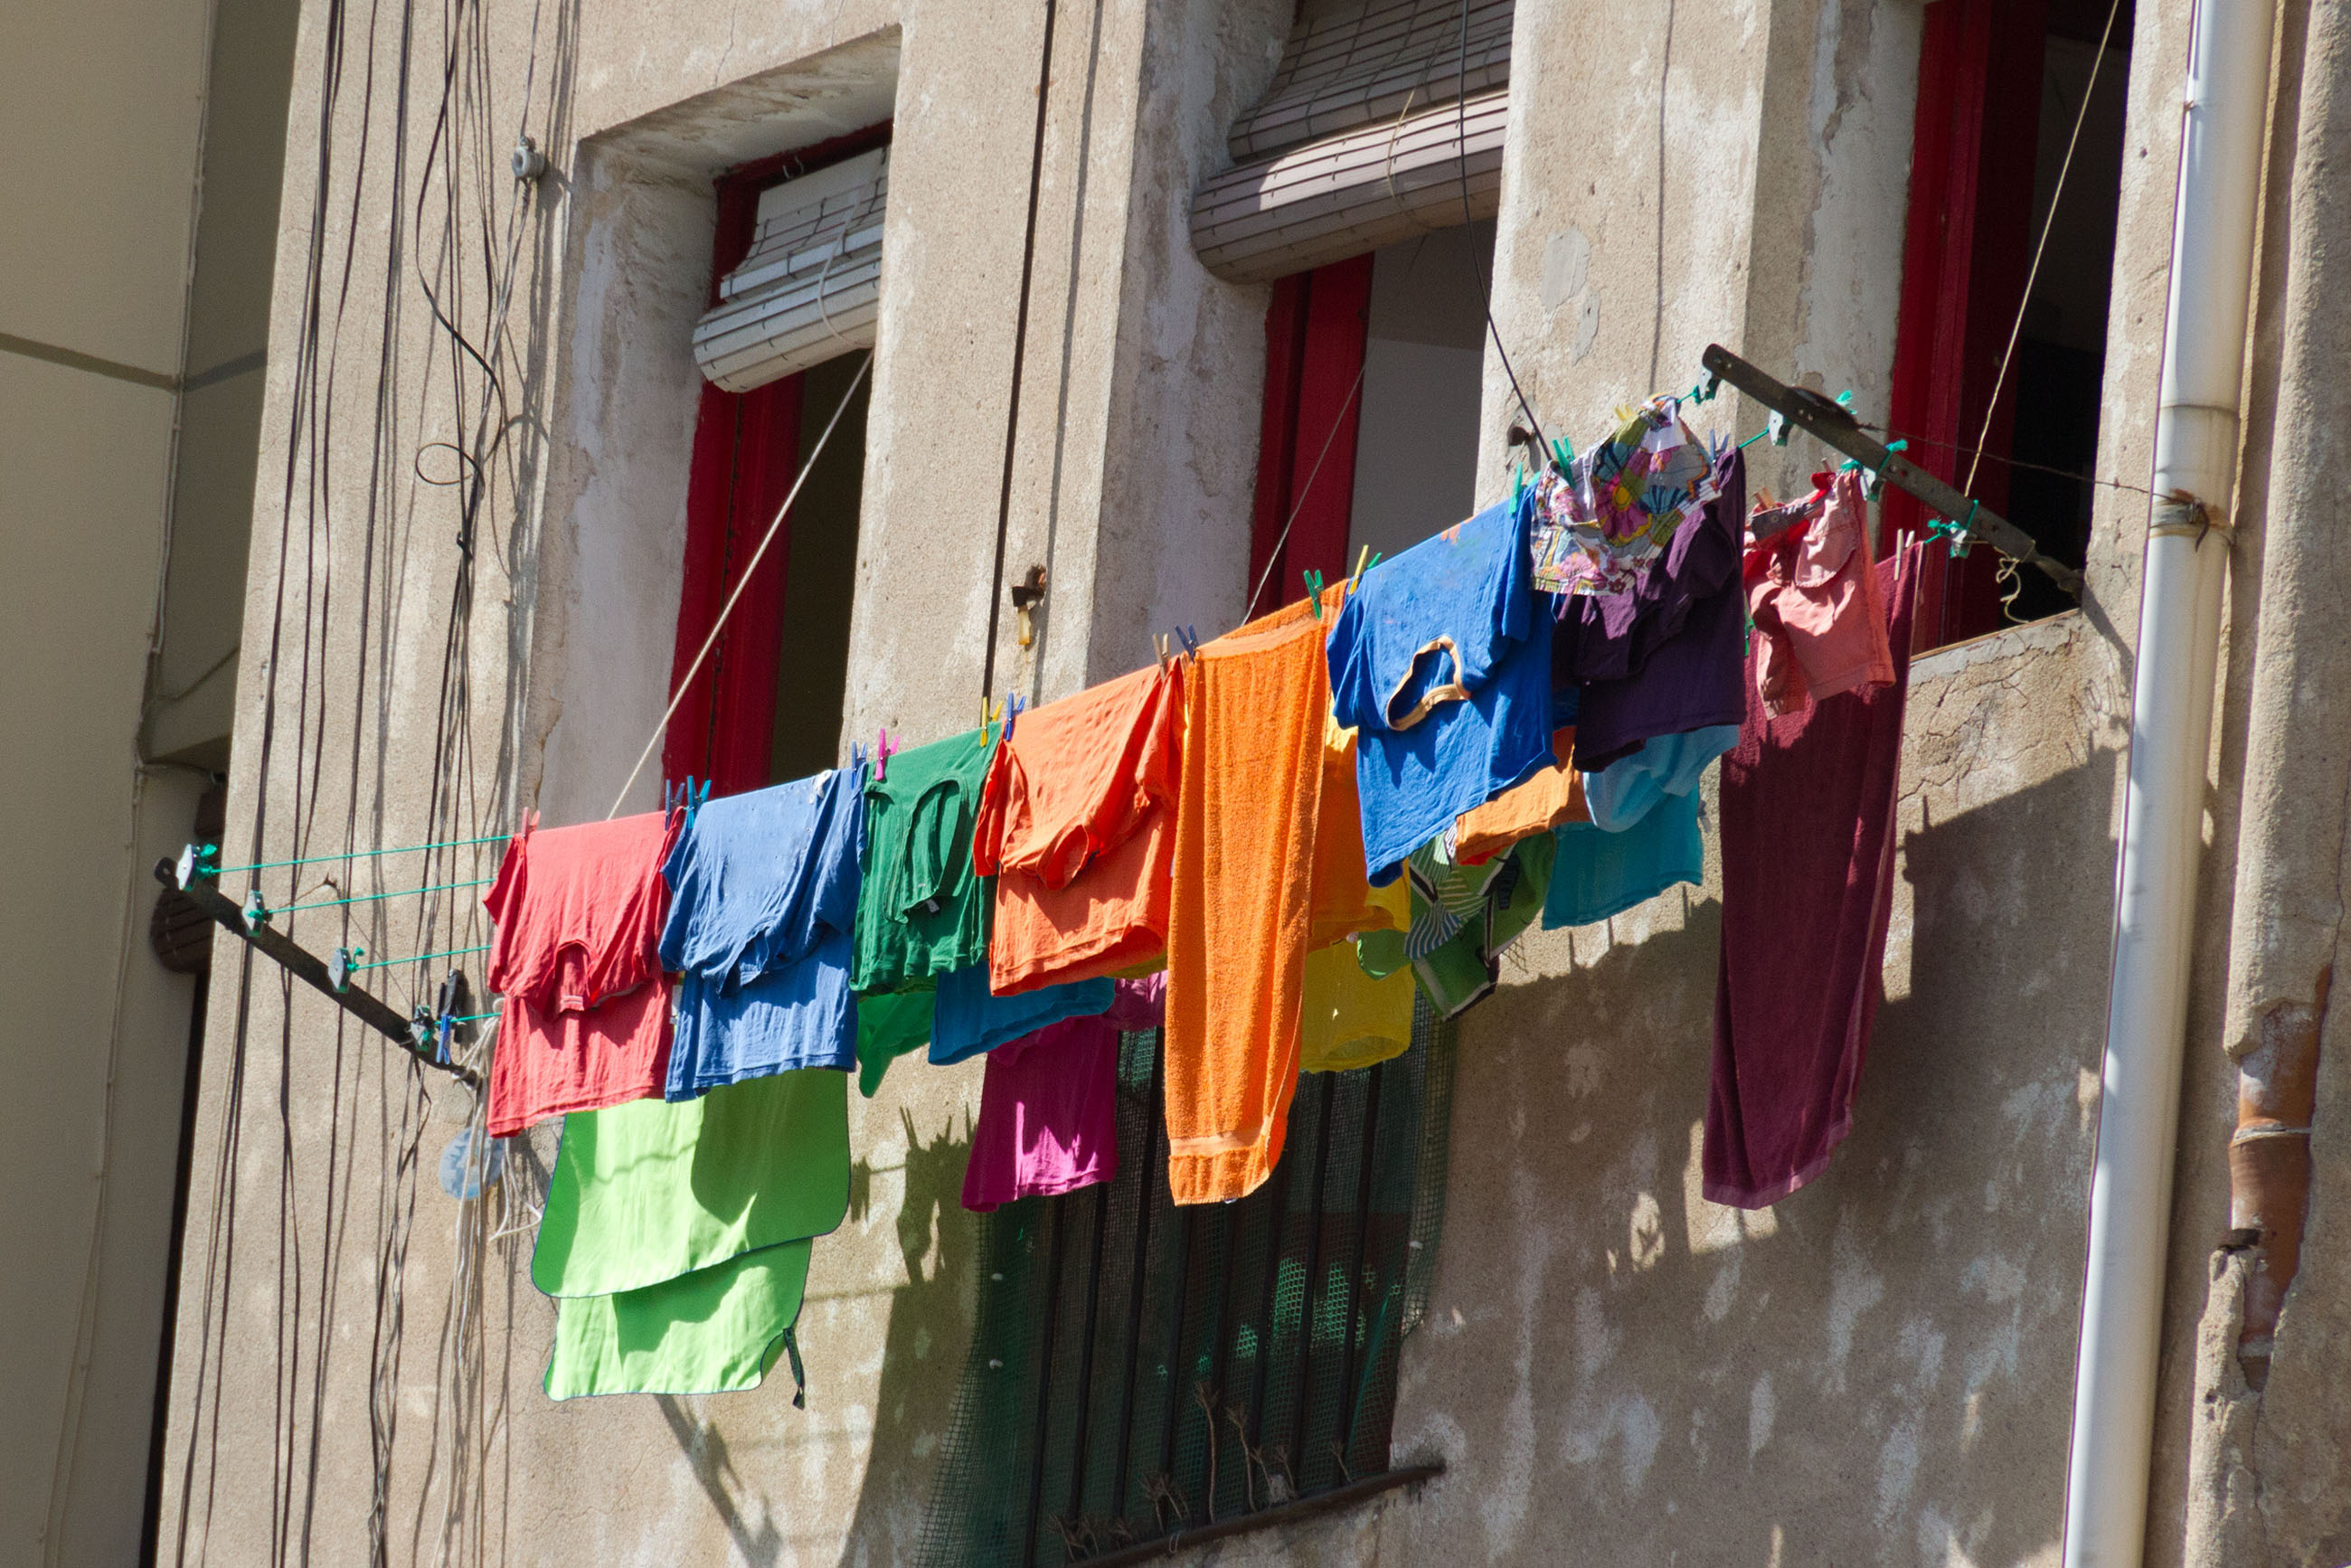 Clothesline, Real, Laundry, Life, Lifestyles, HQ Photo